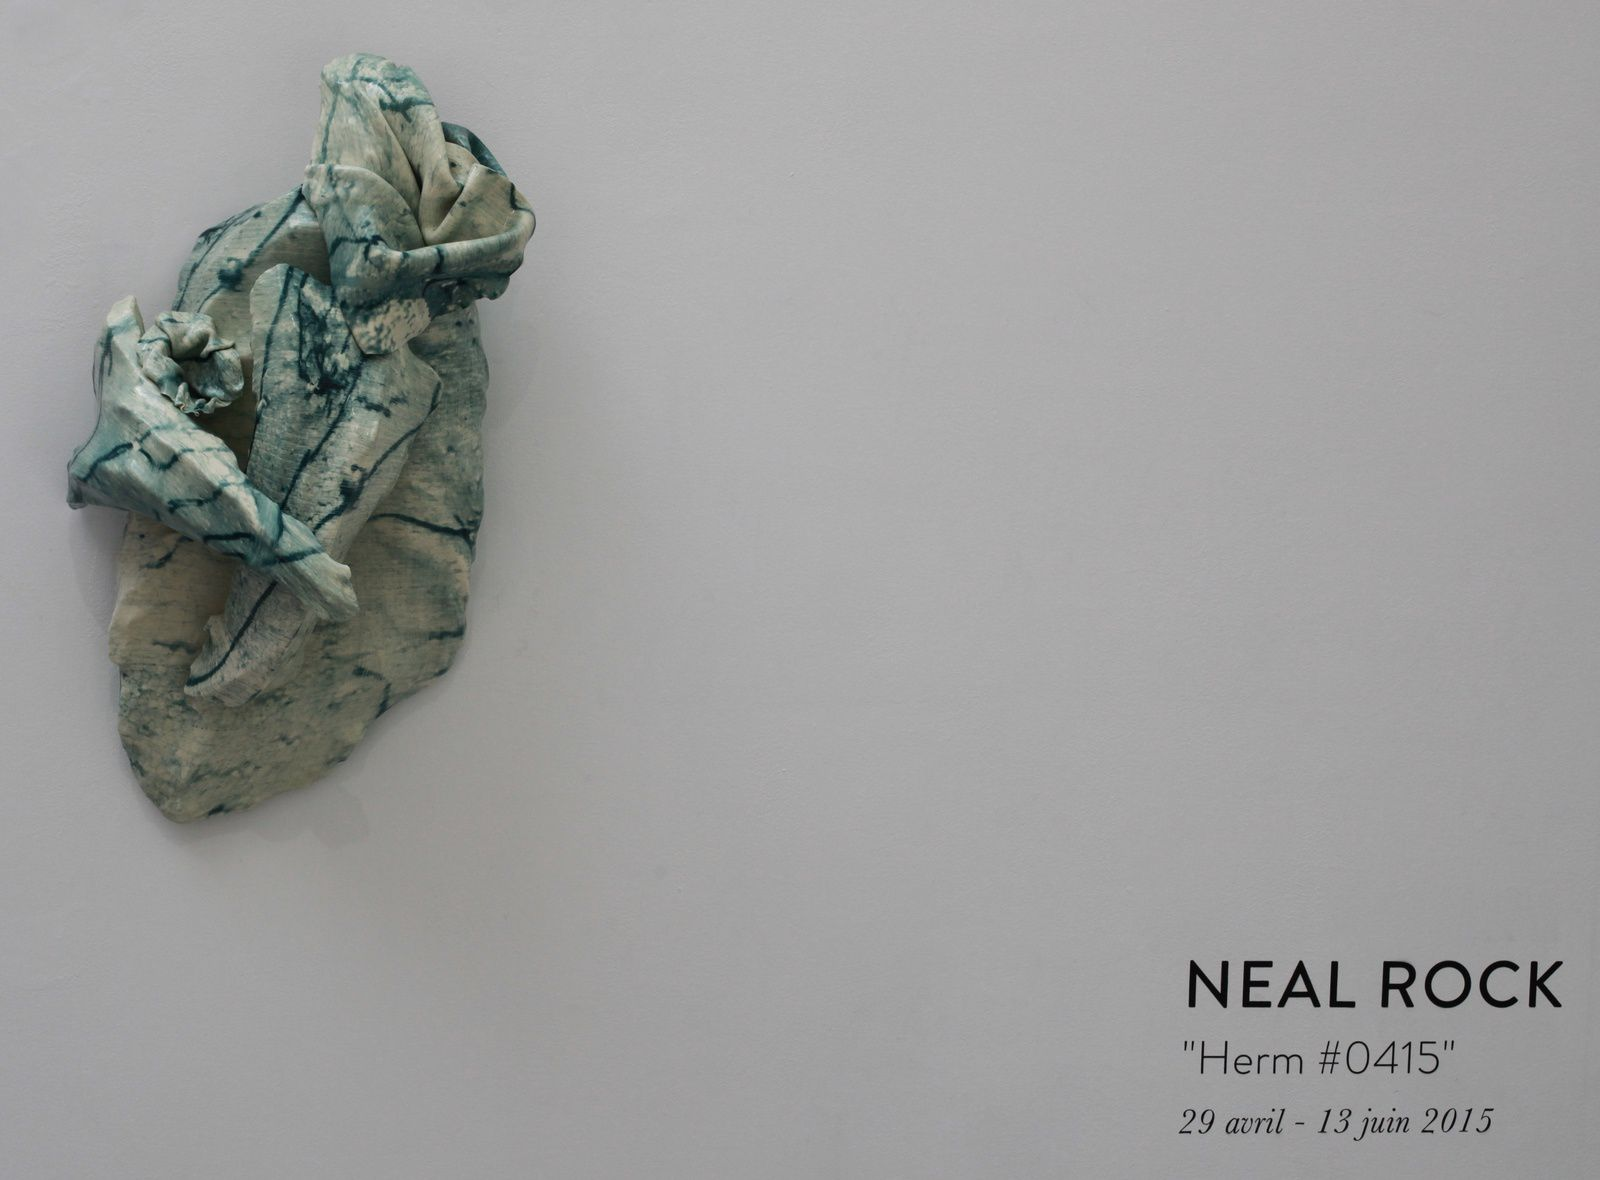 Expo Solo Show: Neal Rock &quot&#x3B;Herm #0415&quot&#x3B;